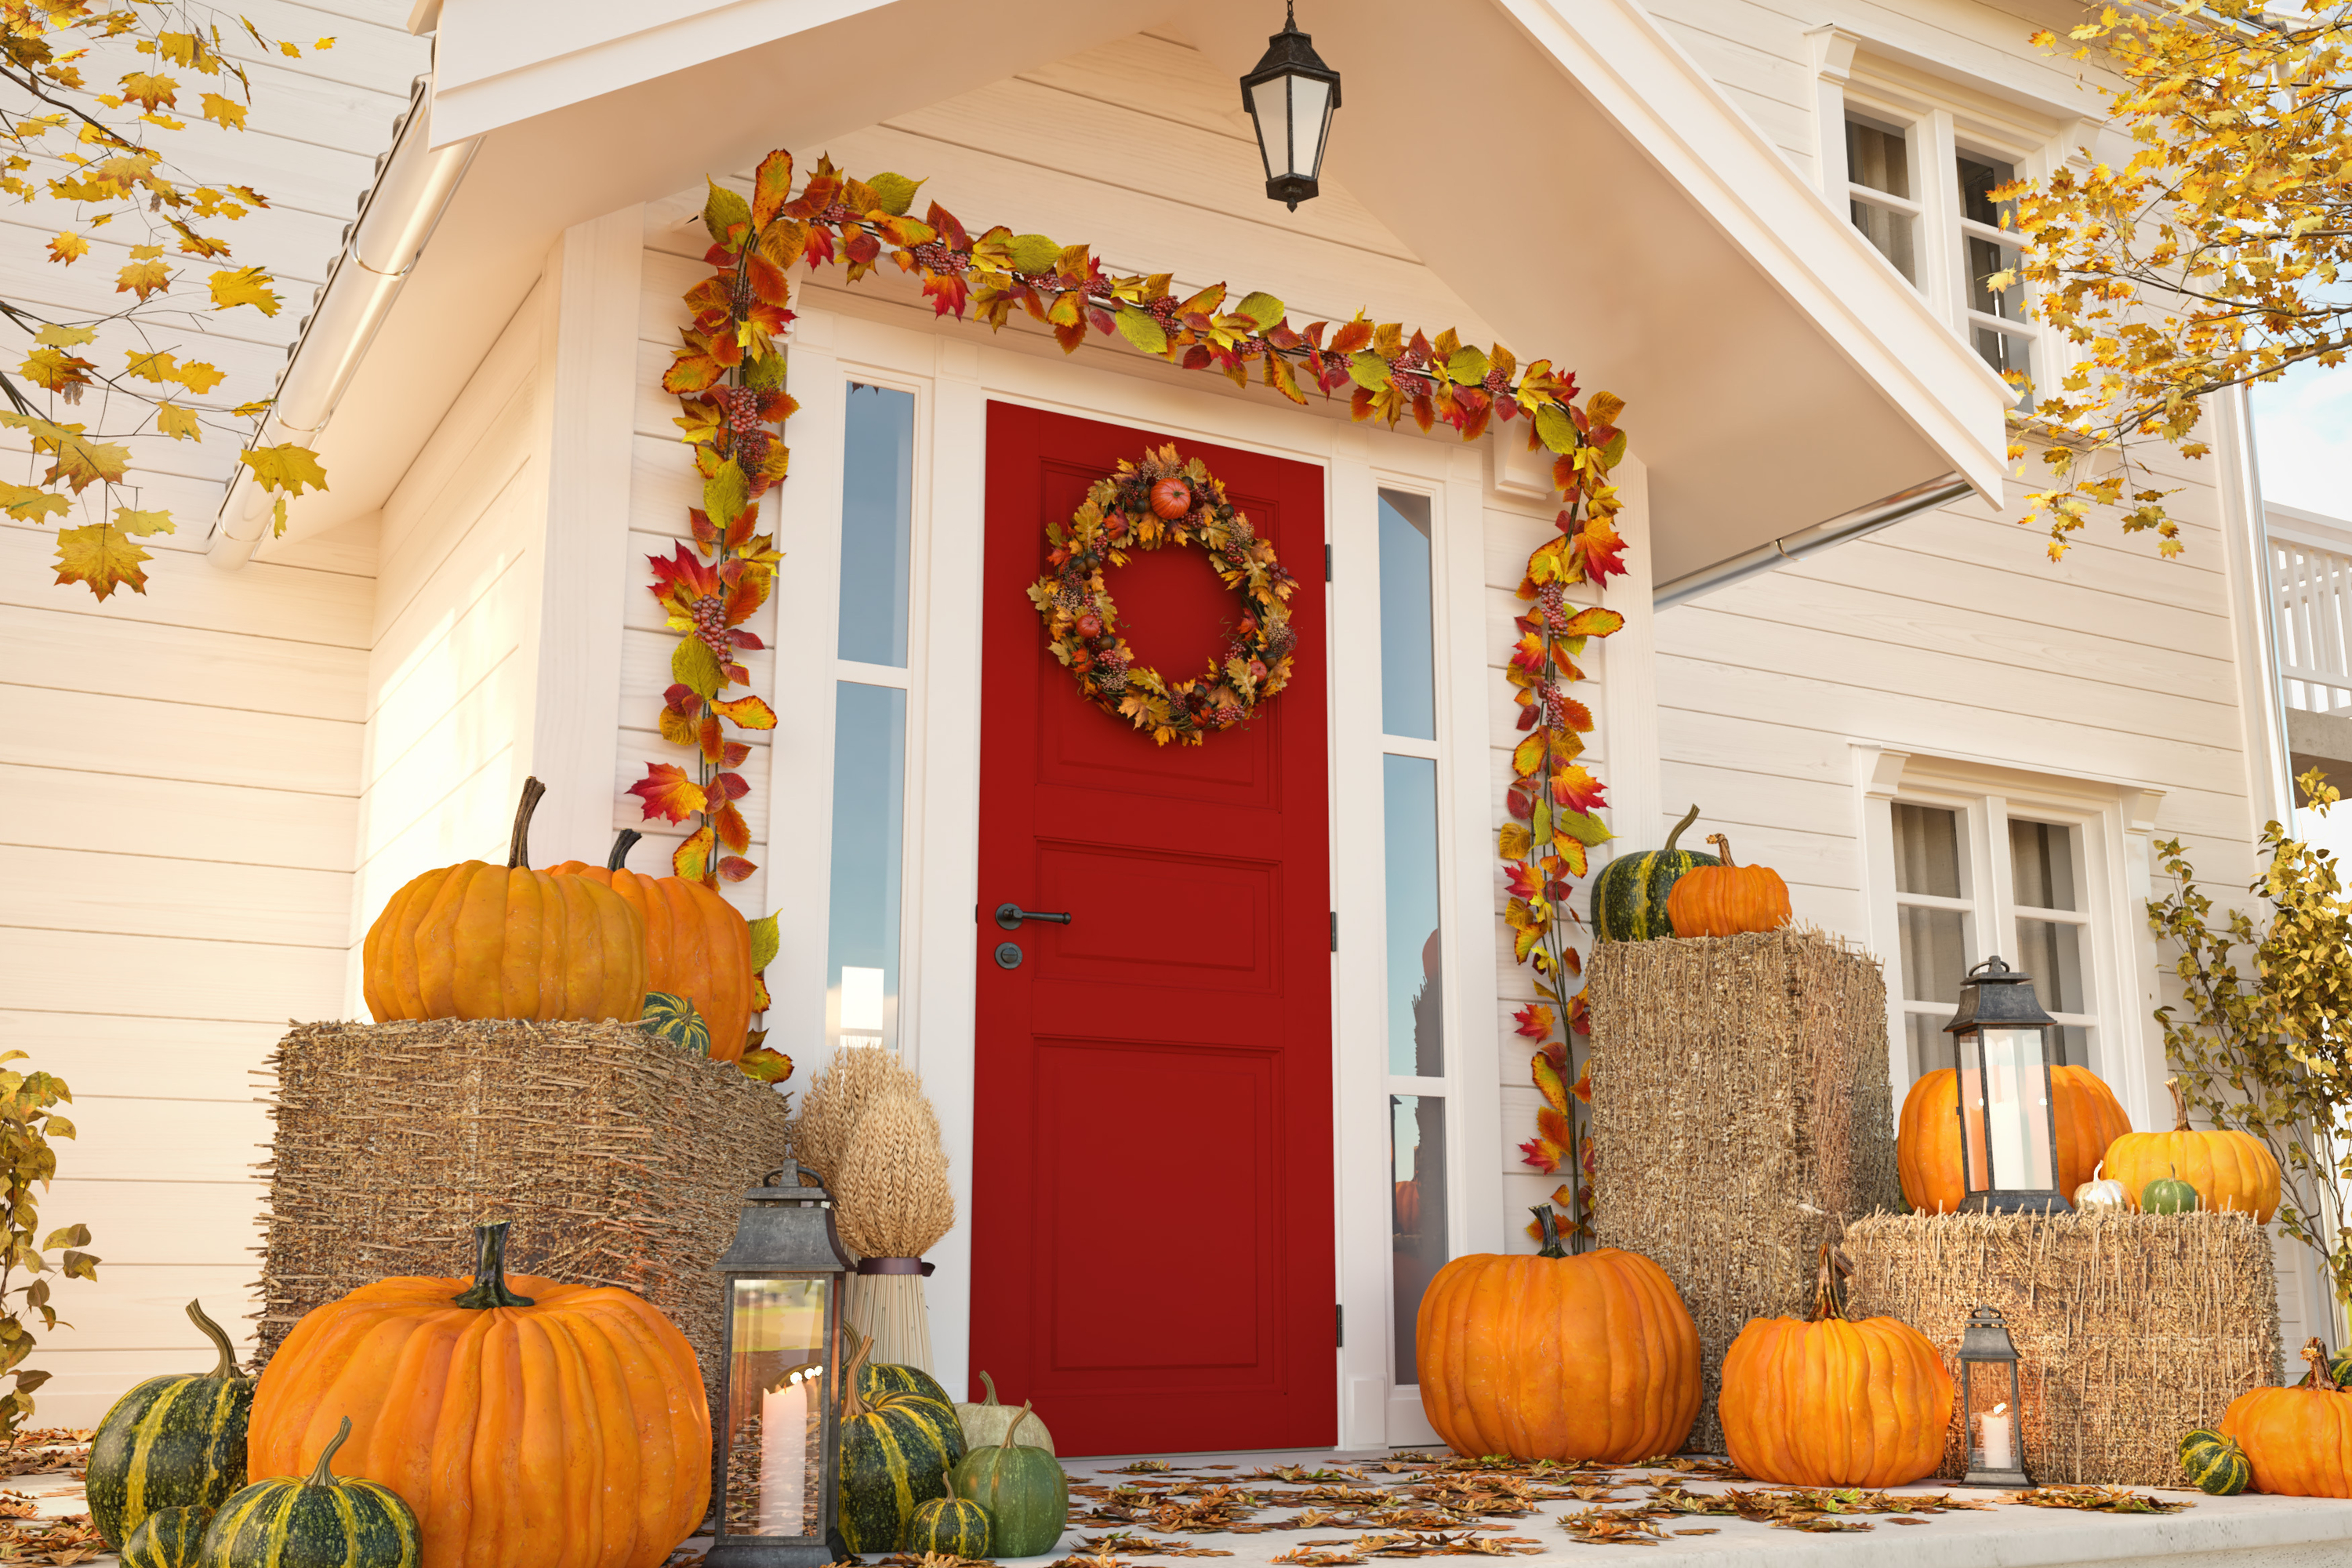 fall porch decorating | fall porch decor ideas | fall | porch | decor | porch decor | fall decor